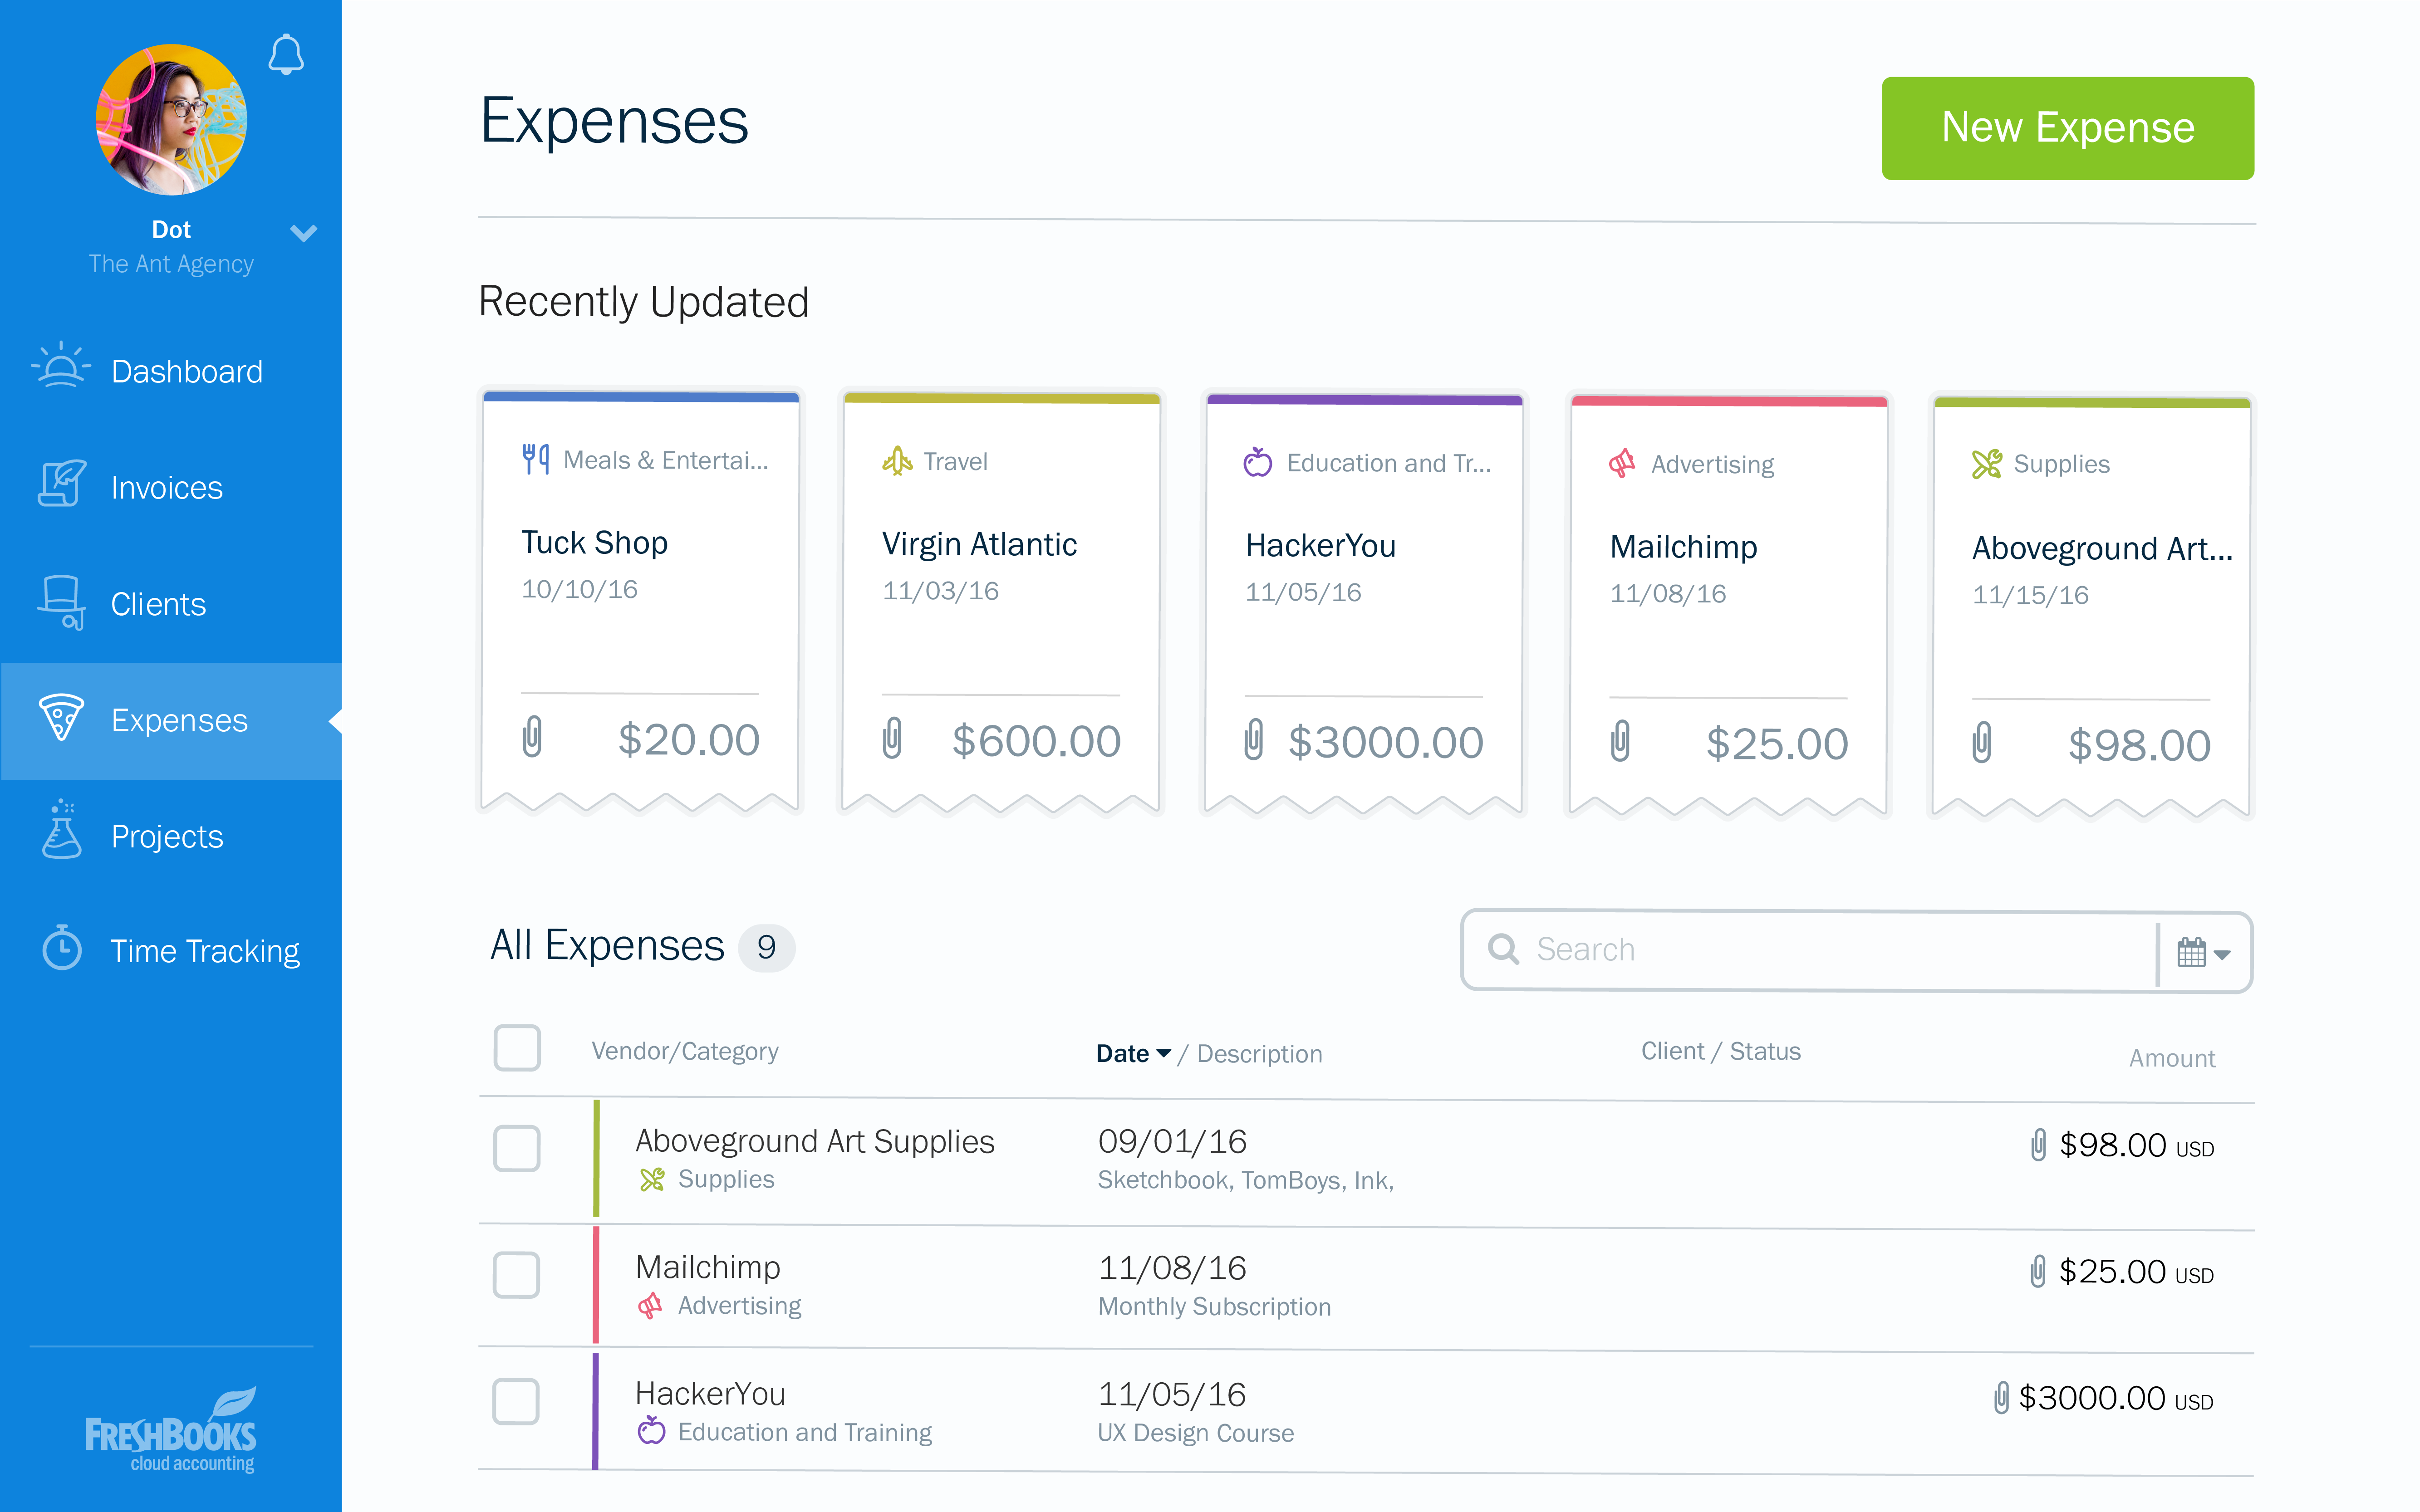 Does Freshbooks Charge For Invoices